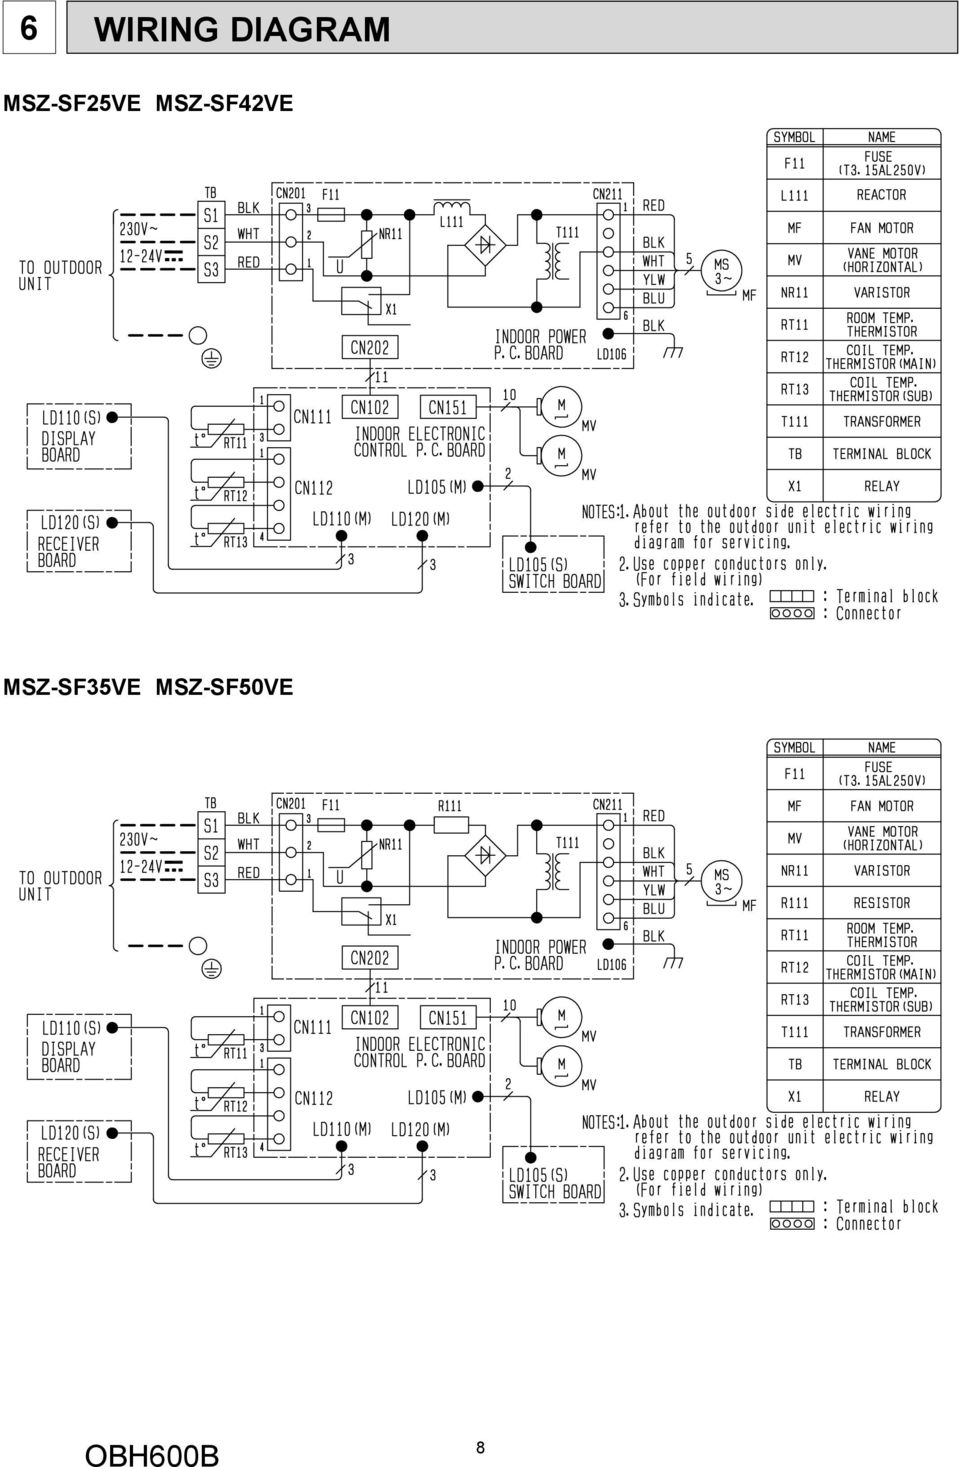 service manual indoor unit pdf 9 7 refrigerant system diagram msz sf25ve msz sf35ve msz sf42ve msz sf50ve refrigerant pipe ø9 52 msz sf25 35 42ve ø12 7 msz sf50ve heat